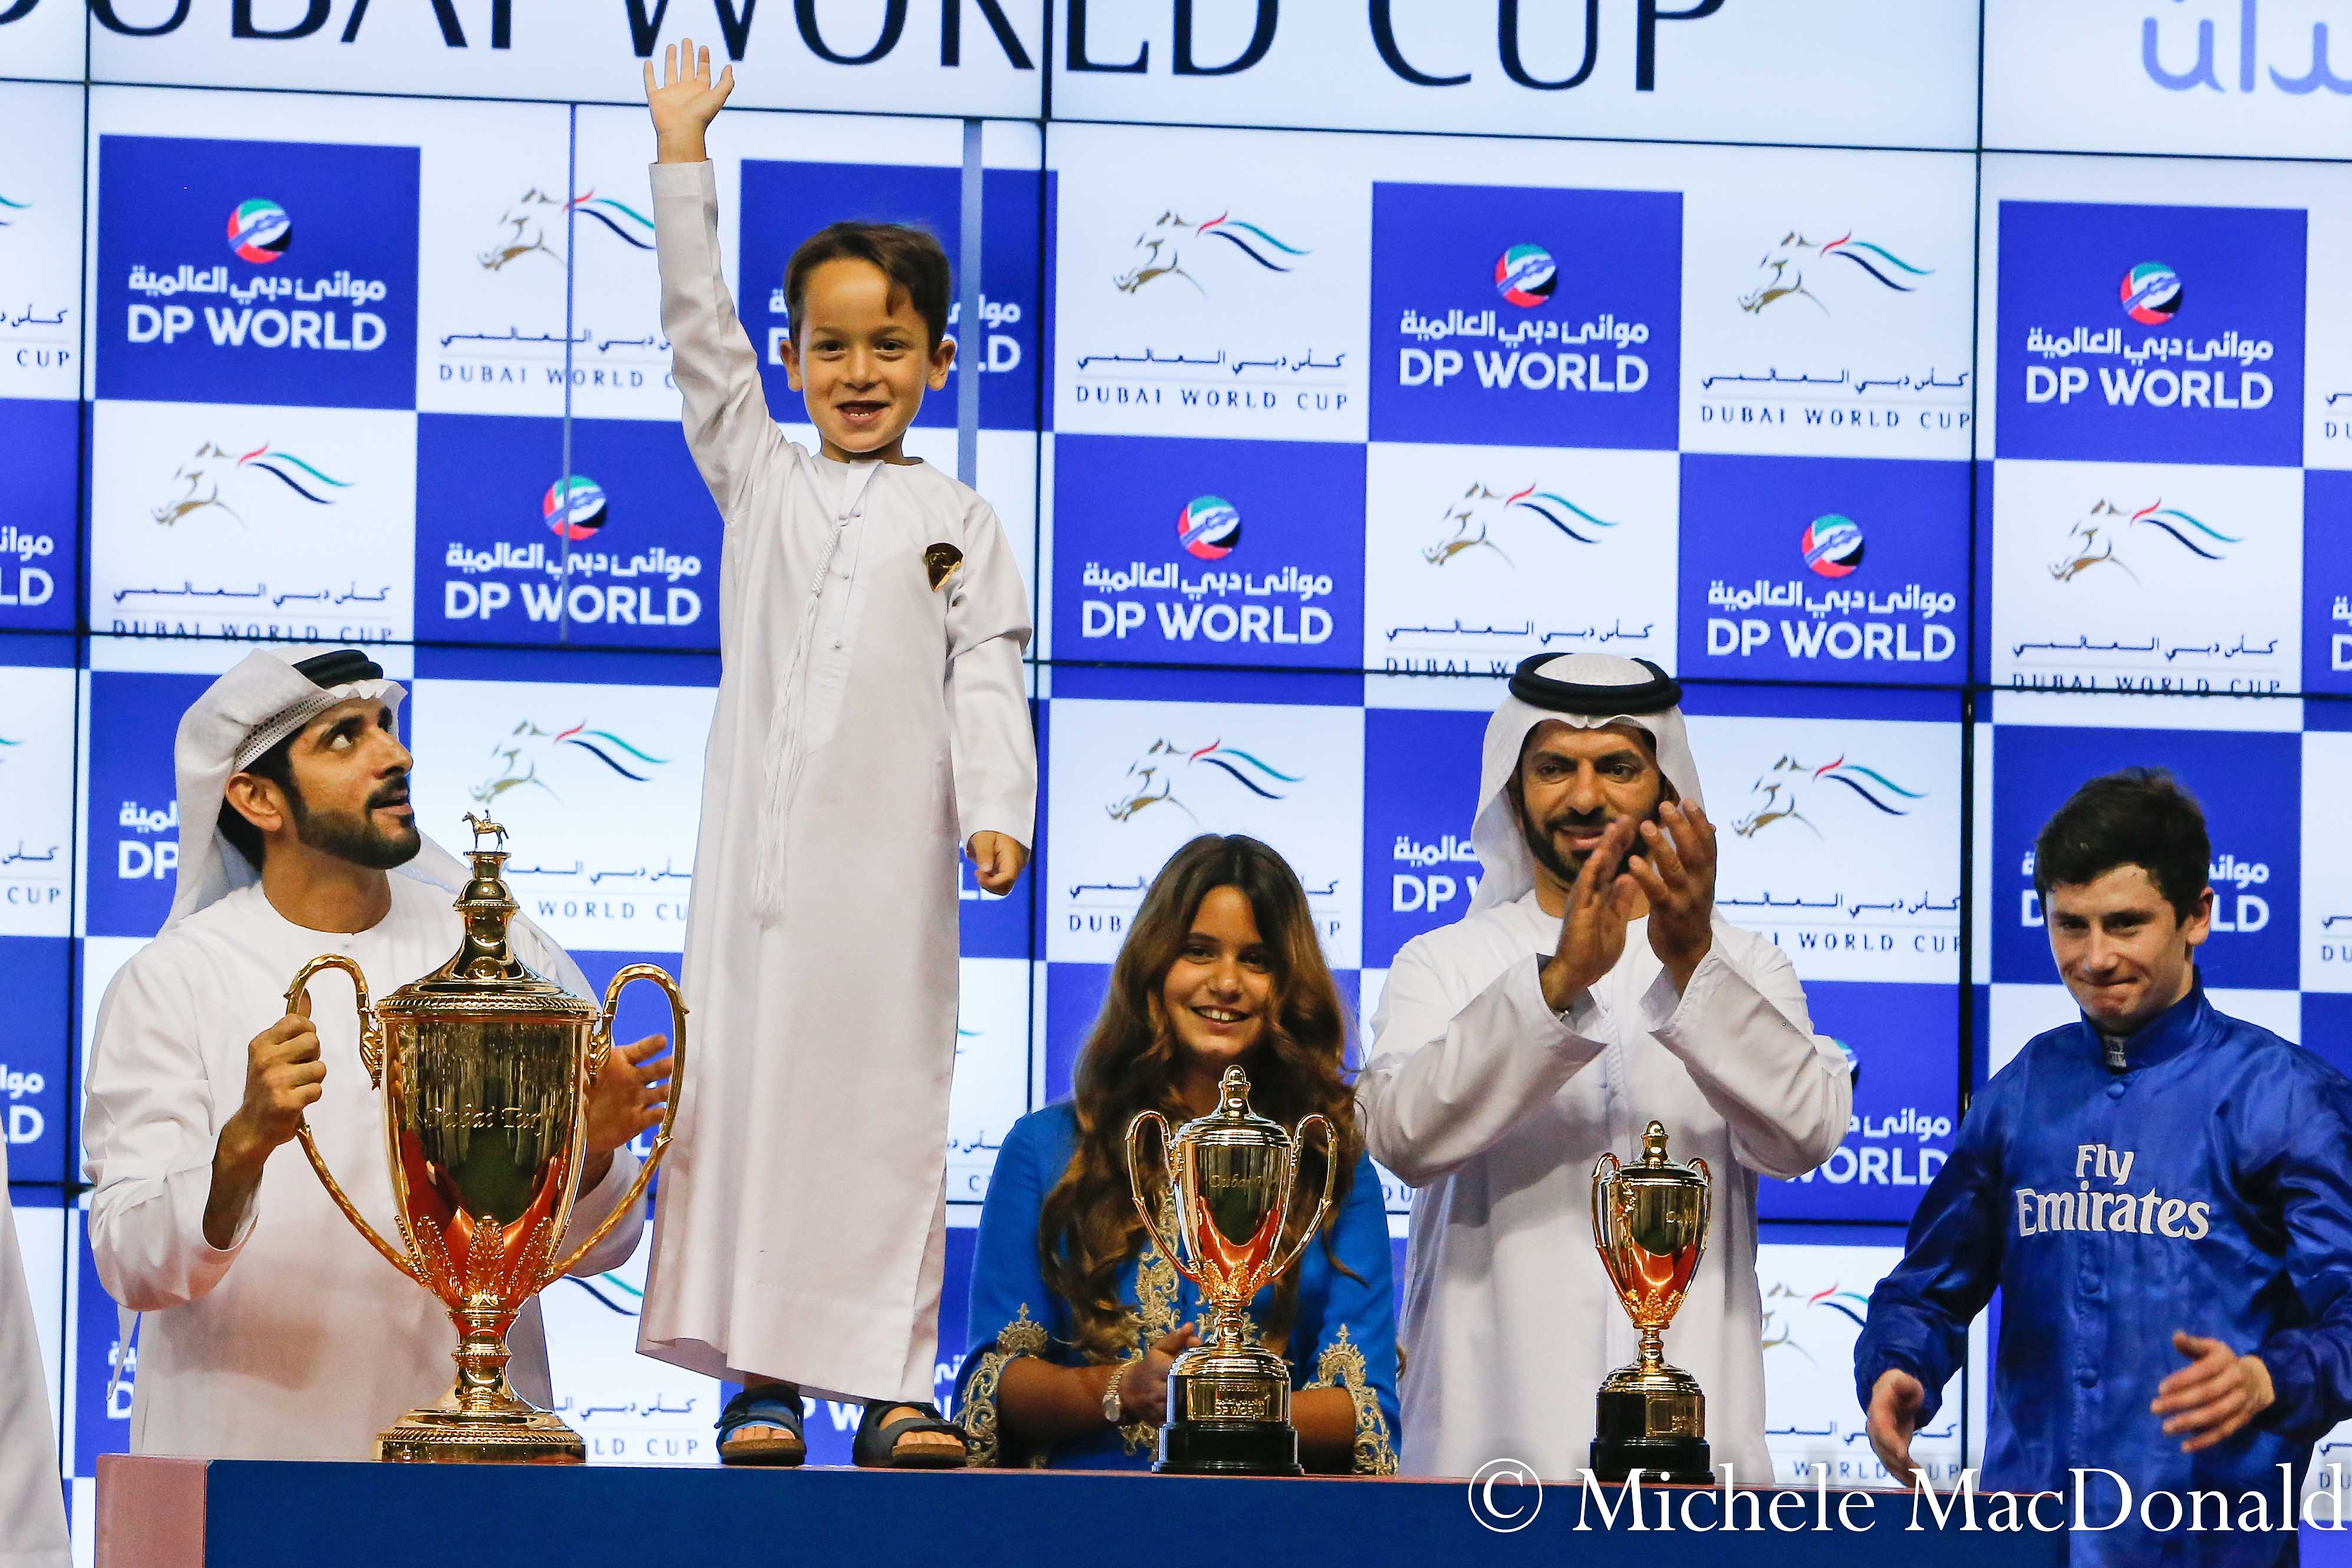 Benbatl's Dubai Turf was the first of two huge wins on the night for Saeed Bin Suroor's team. Here with the trophy are Crown Prince Sheikh Hamdan bin Mohammed al Maktoum with the young son of Sheikh Mohammed and Princess Haya, Sheikh Zayed, standing on the table next to their daughter, Al Jalila, and Saeed Bin Suroor and  jockey Oisin Murphy. Photo: Michele MacDonald